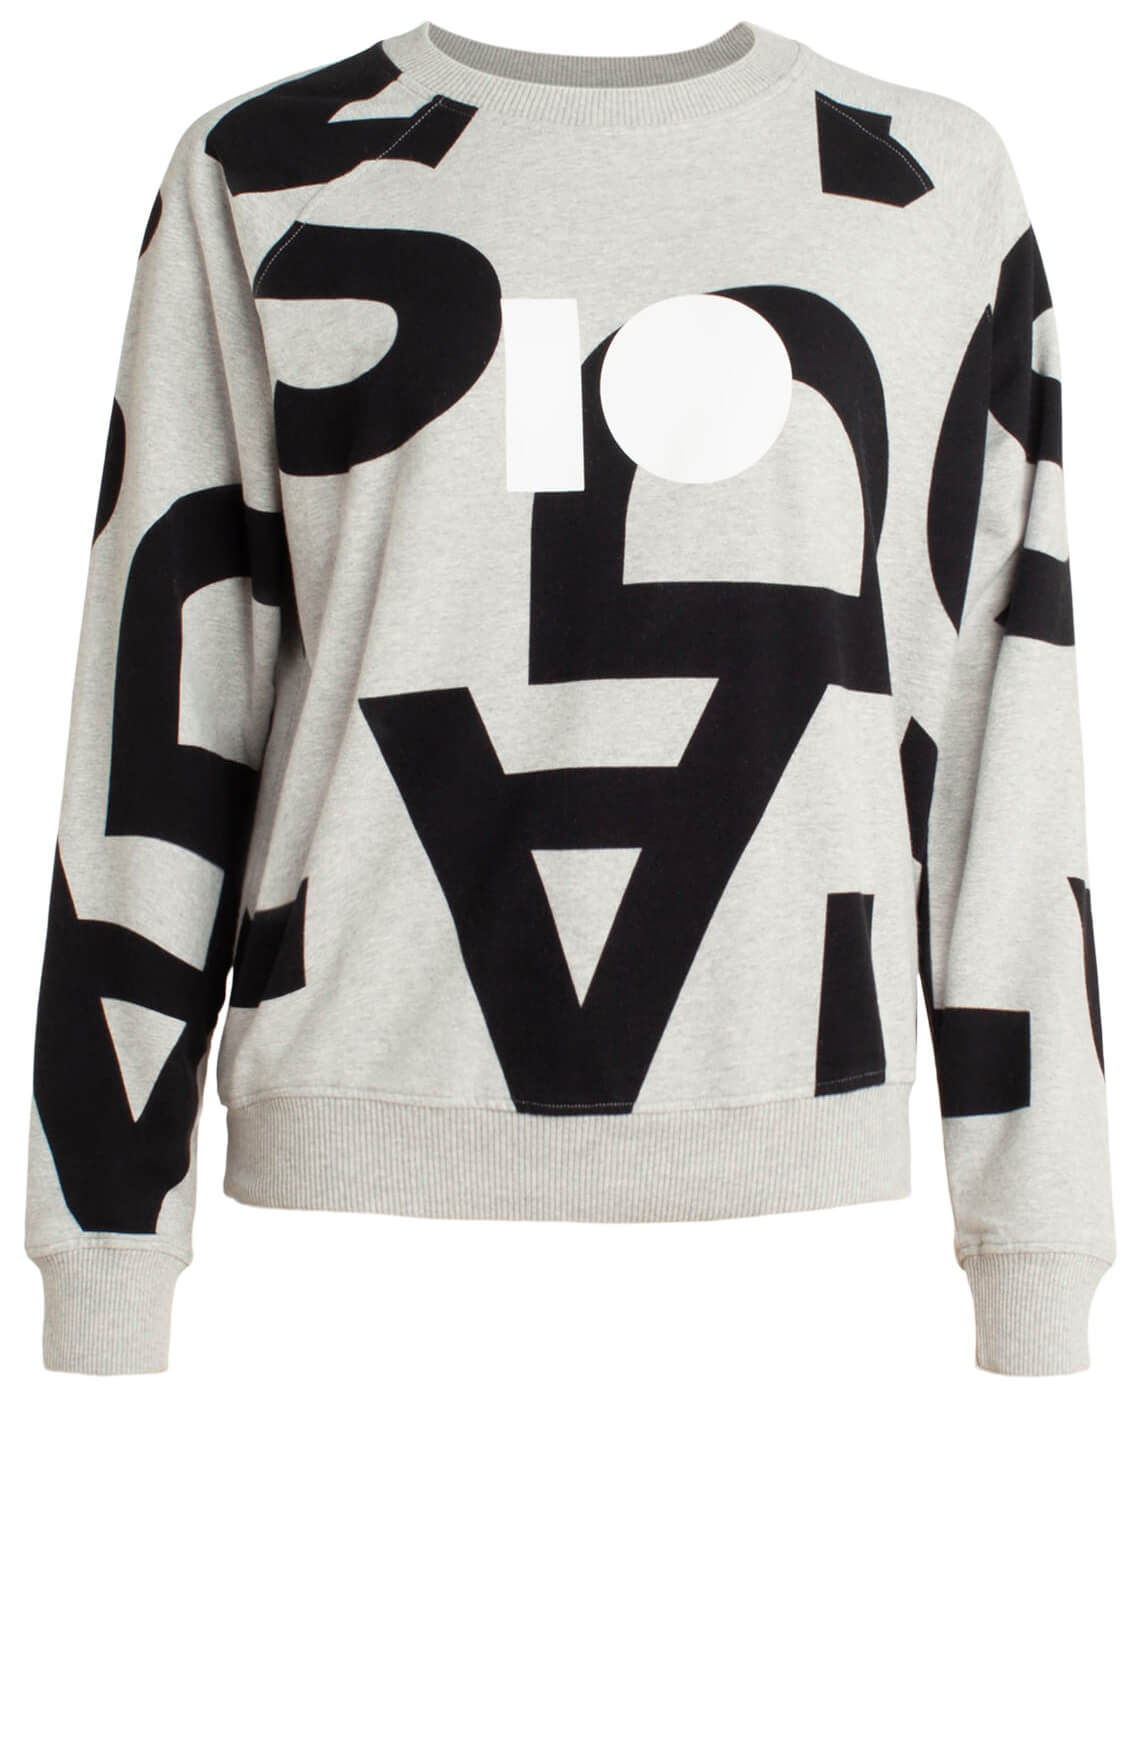 10 Days Dames Sweater met tekstprint Grijs